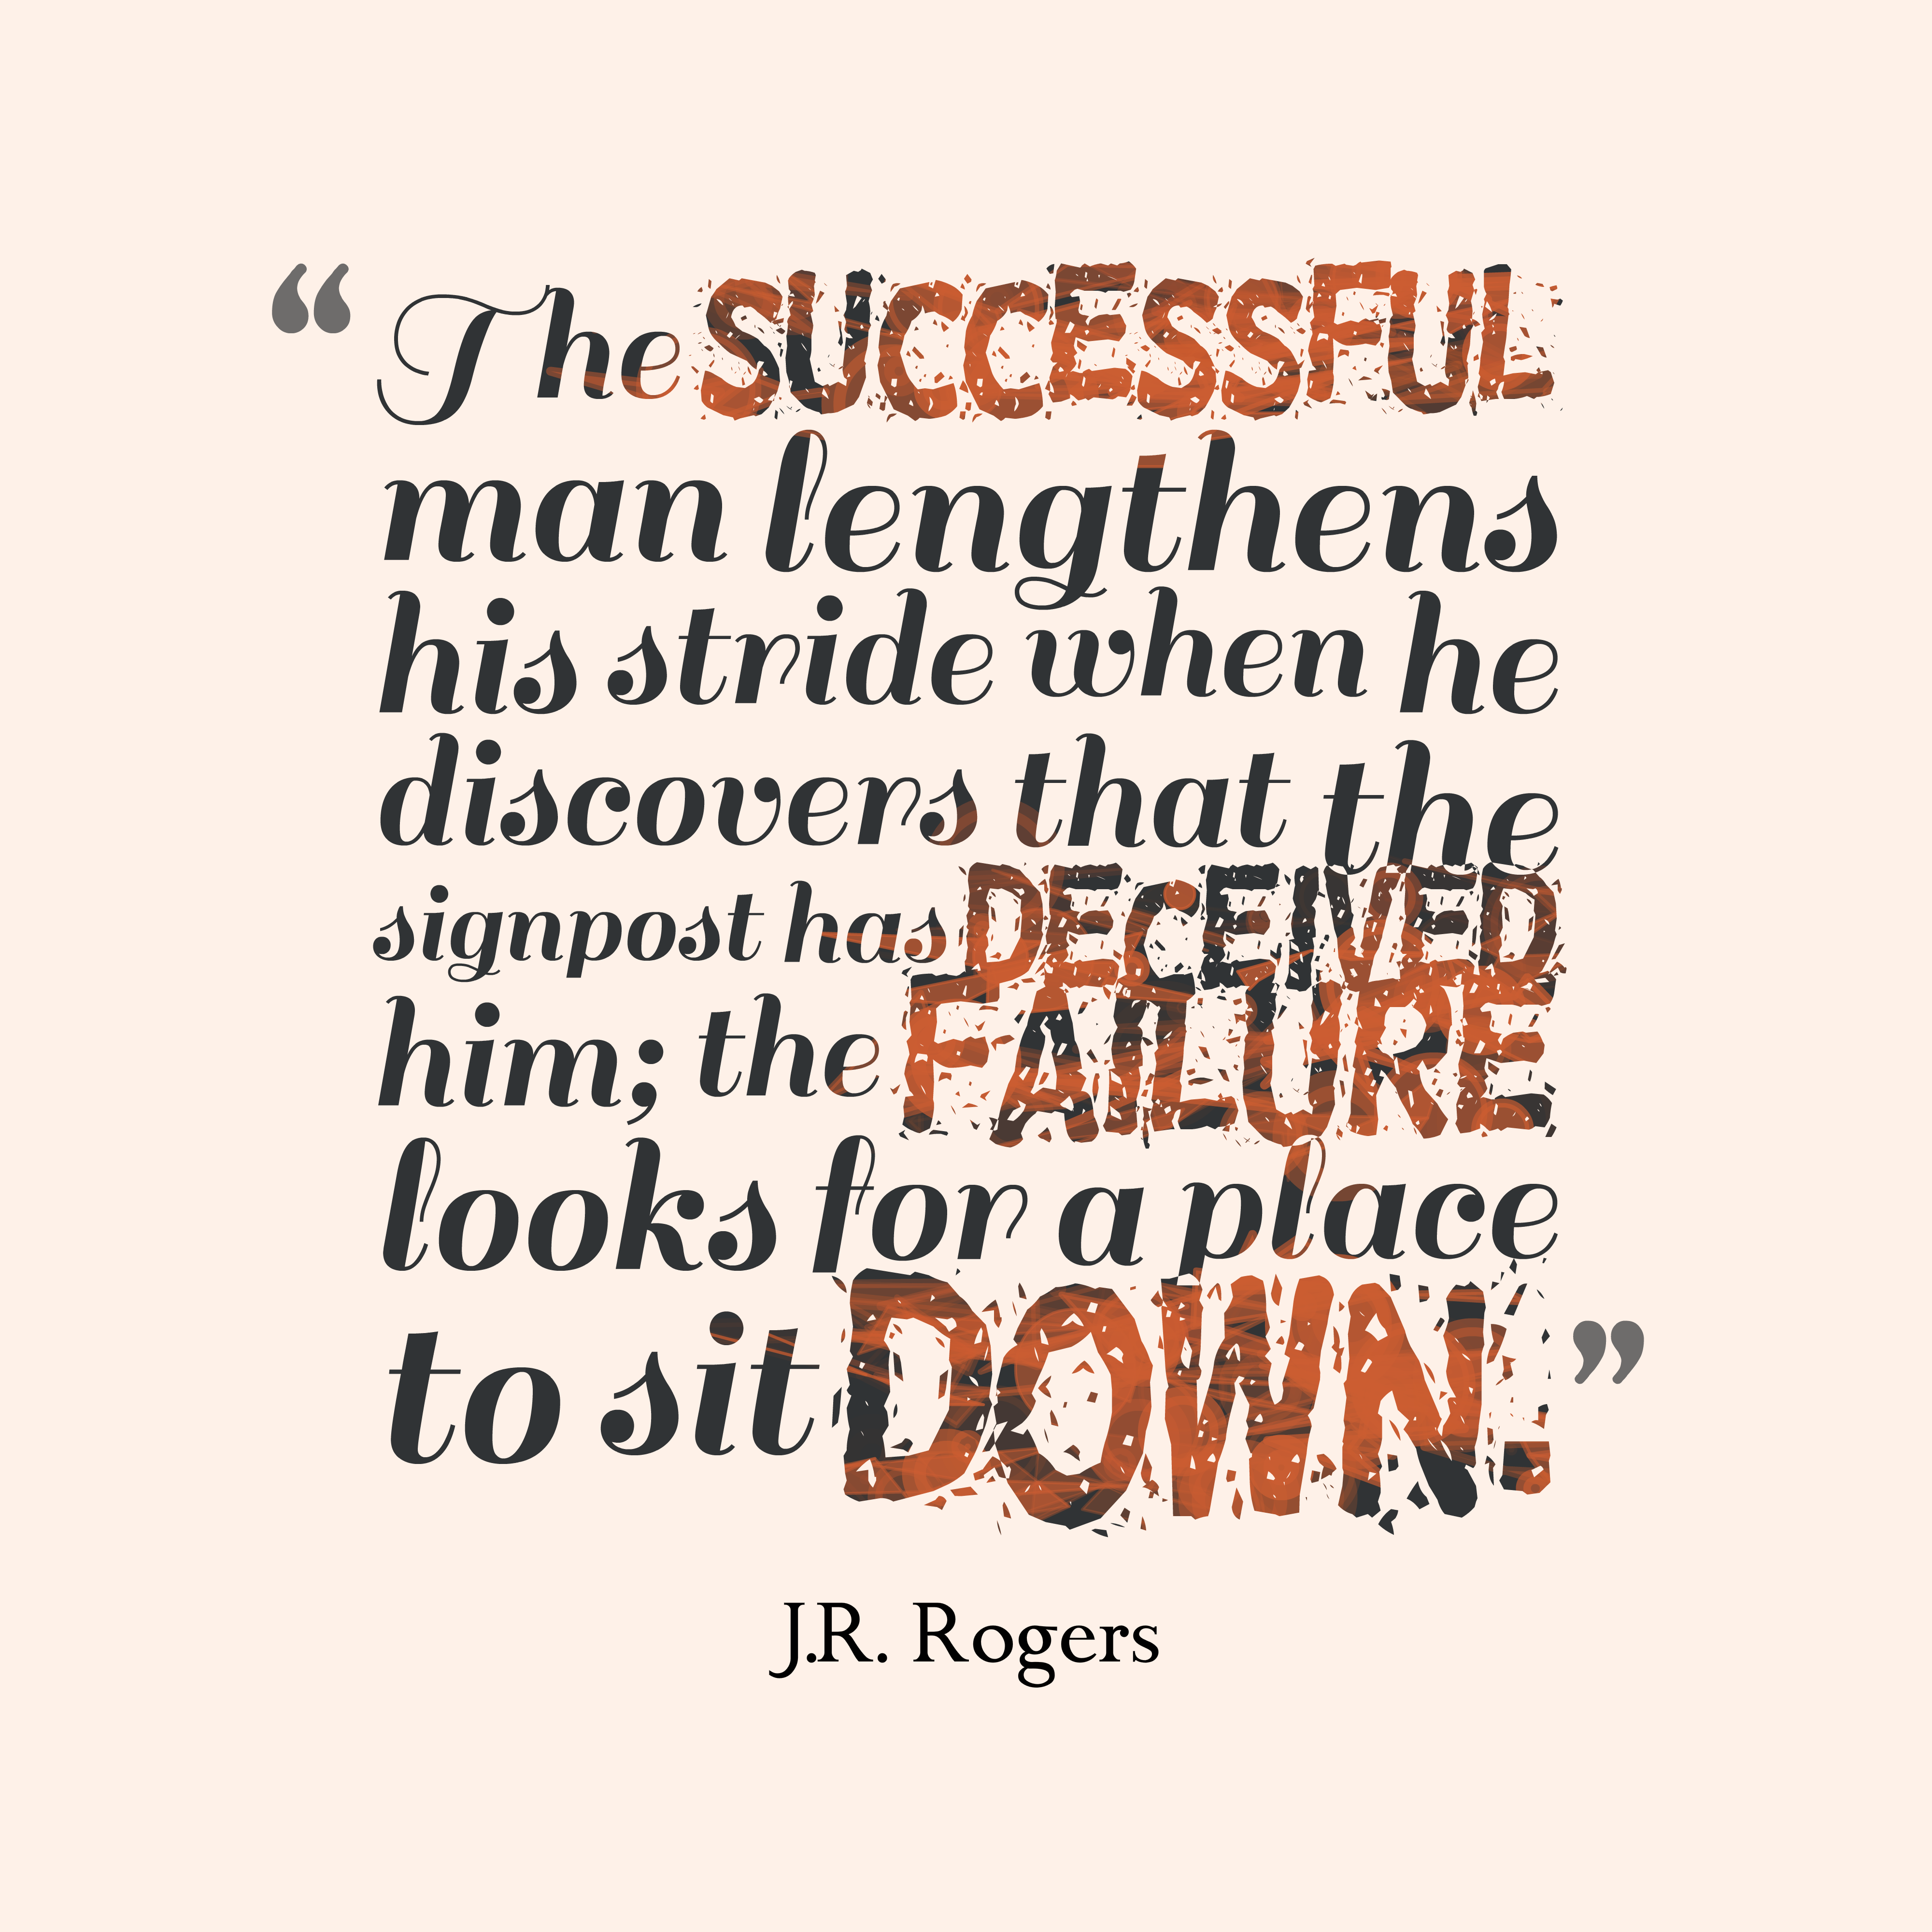 Quotes image of The successful man lengthens his stride when he discovers that the signpost has deceived him; the failure looks for a place to sit down.